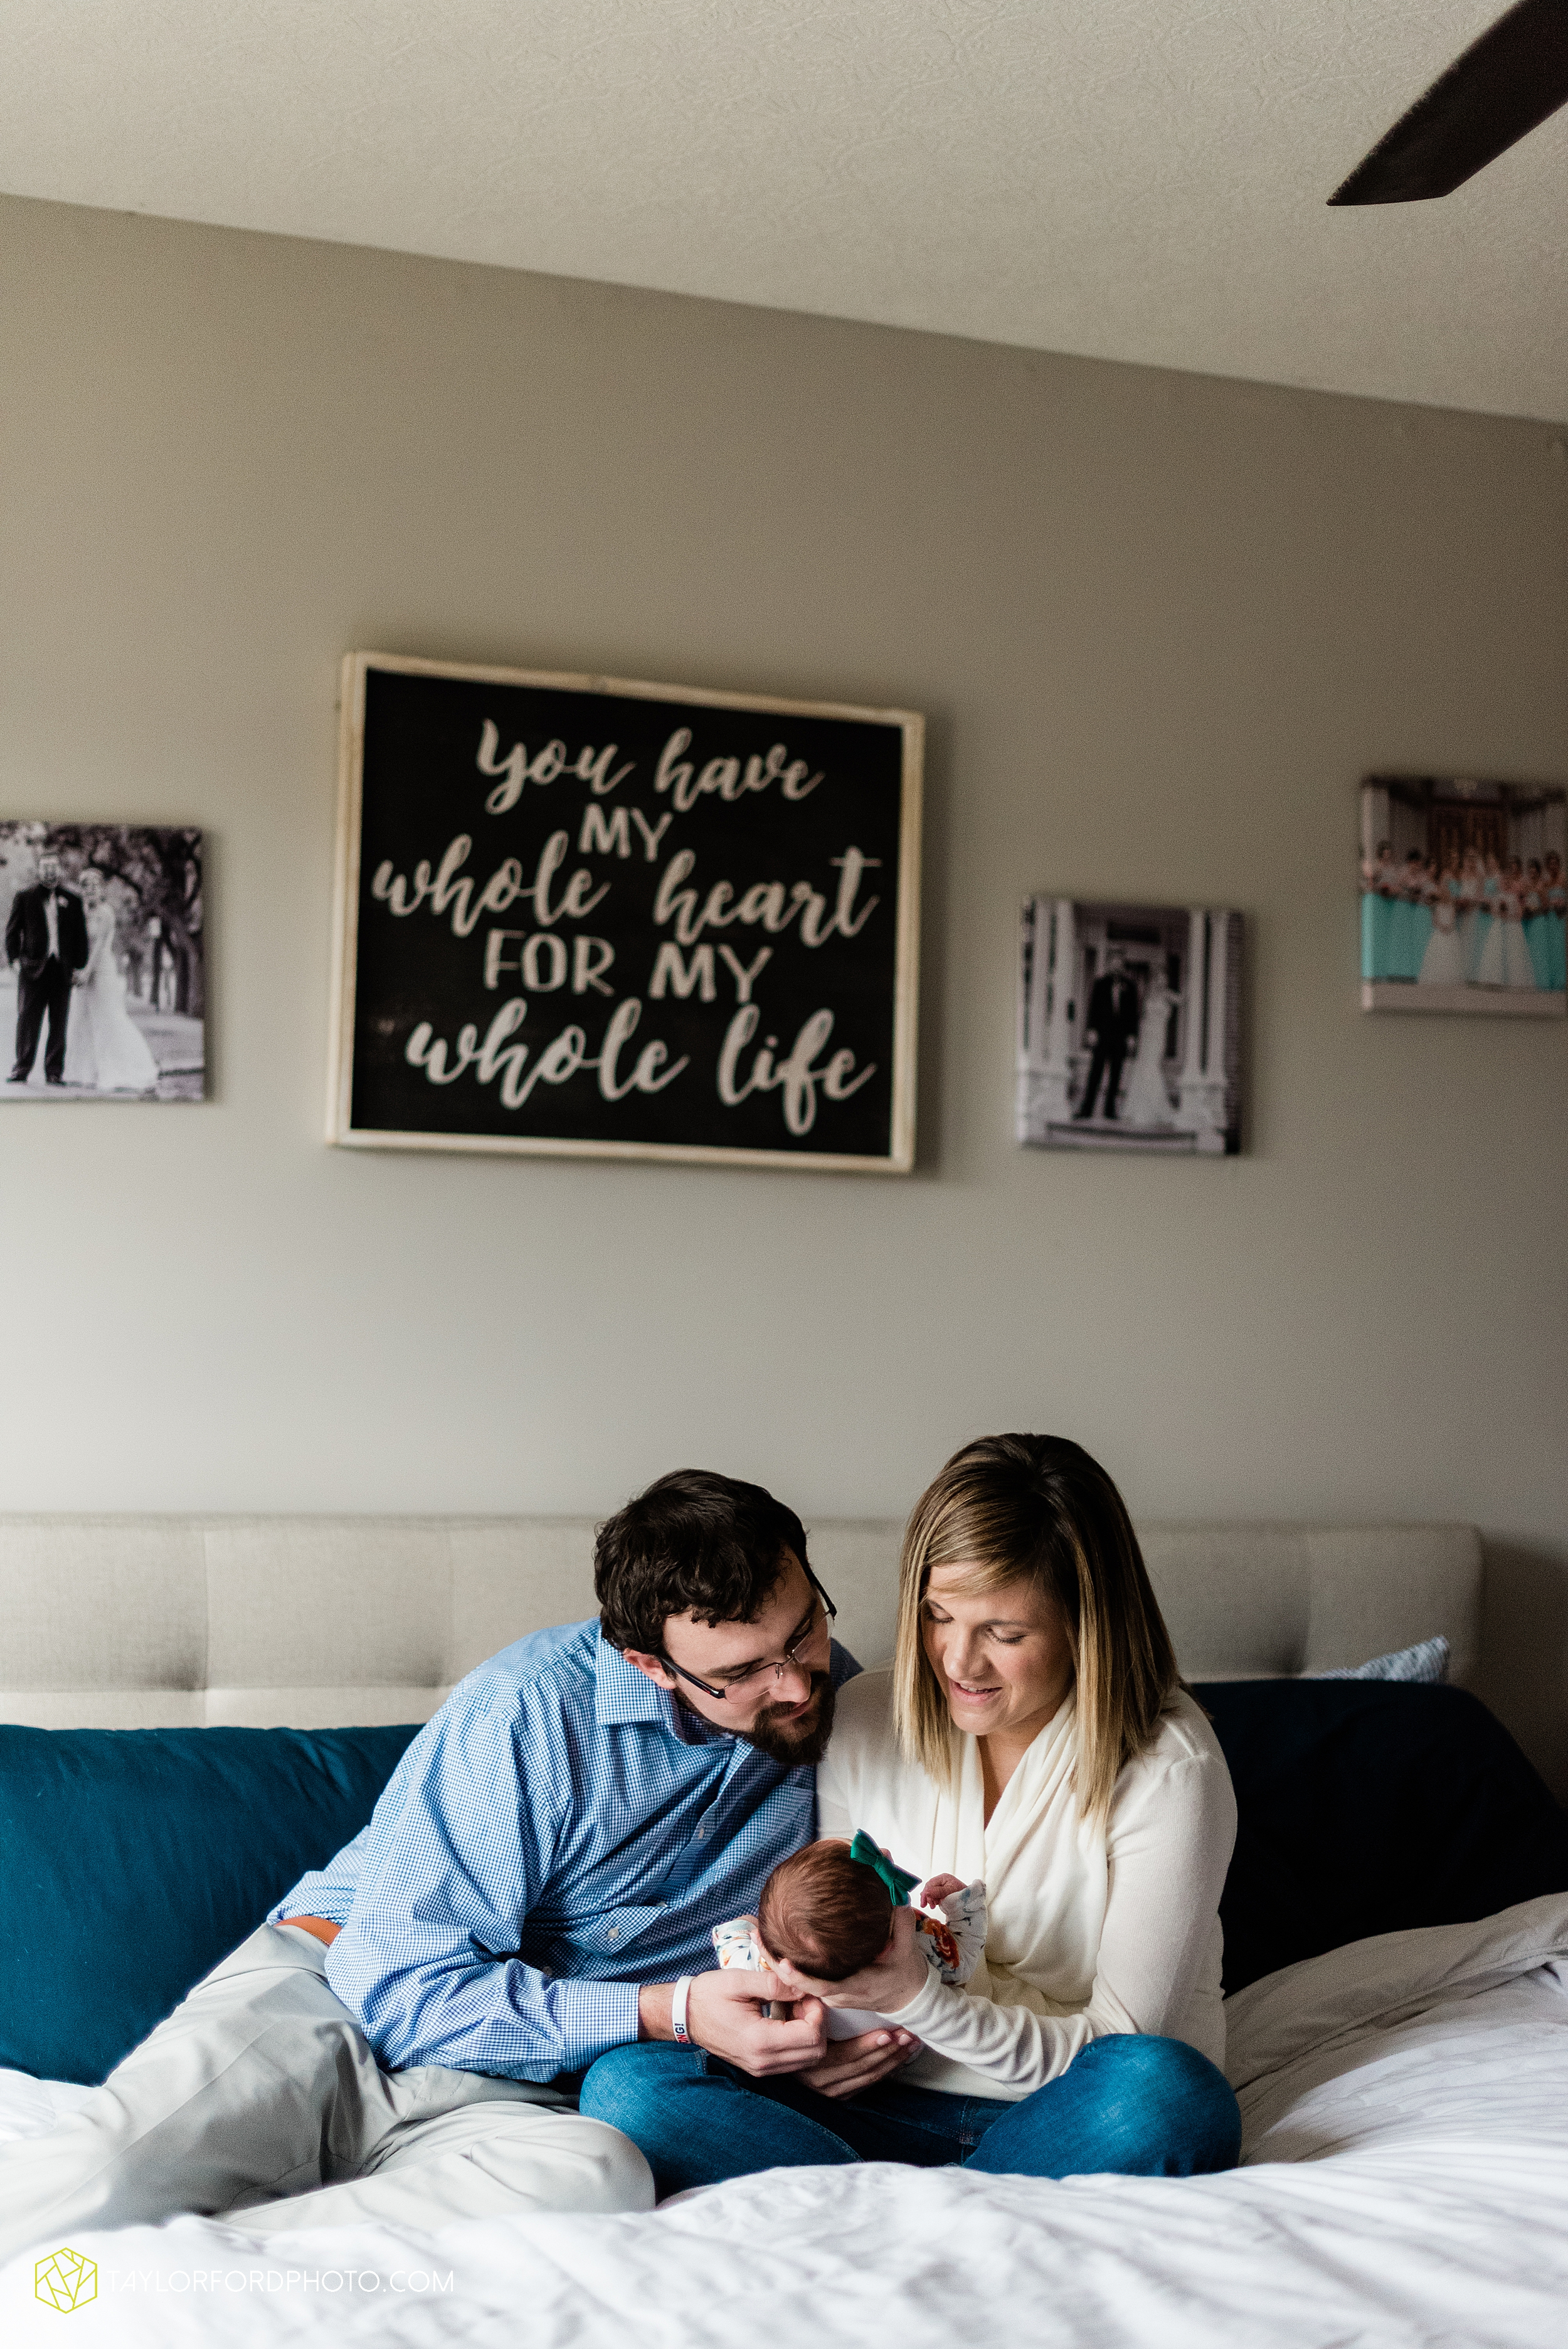 ashley-aaron-noraa-lifestyle-at-home-family-newborn-blacklick-columbus-ohio-photography-taylor-ford-hirschy-photographer_2339.jpg